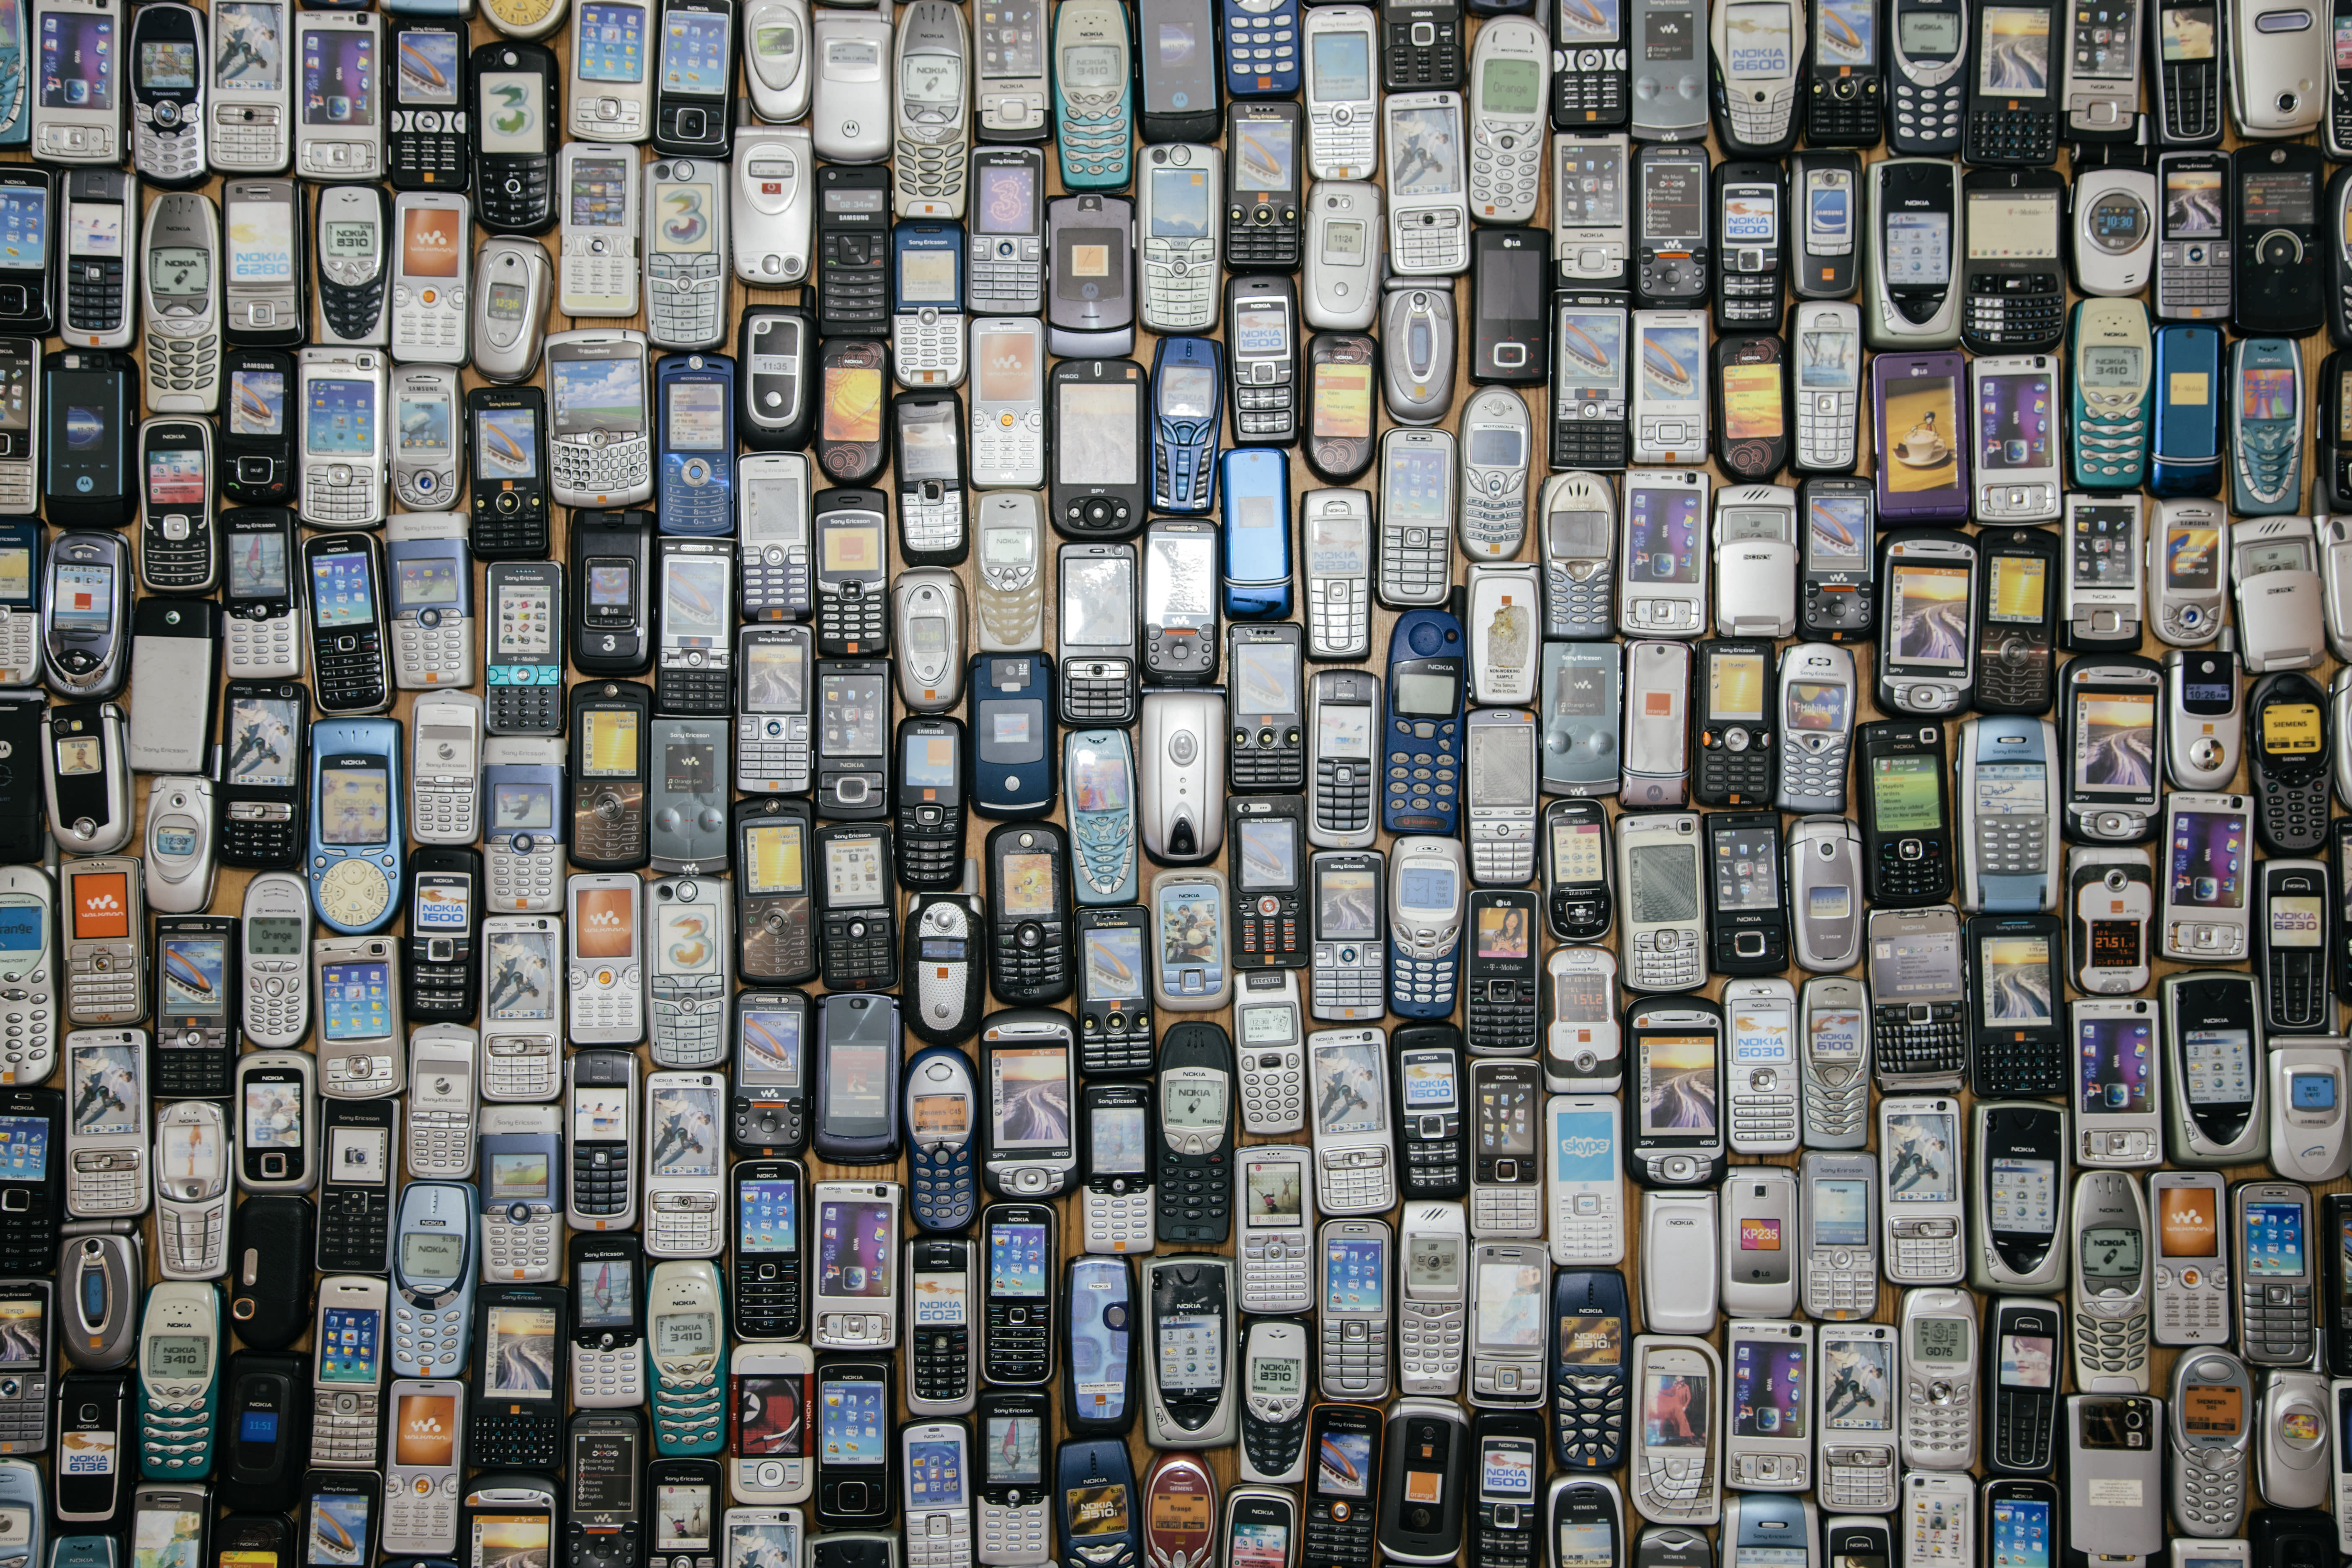 Lots of old mobile phones